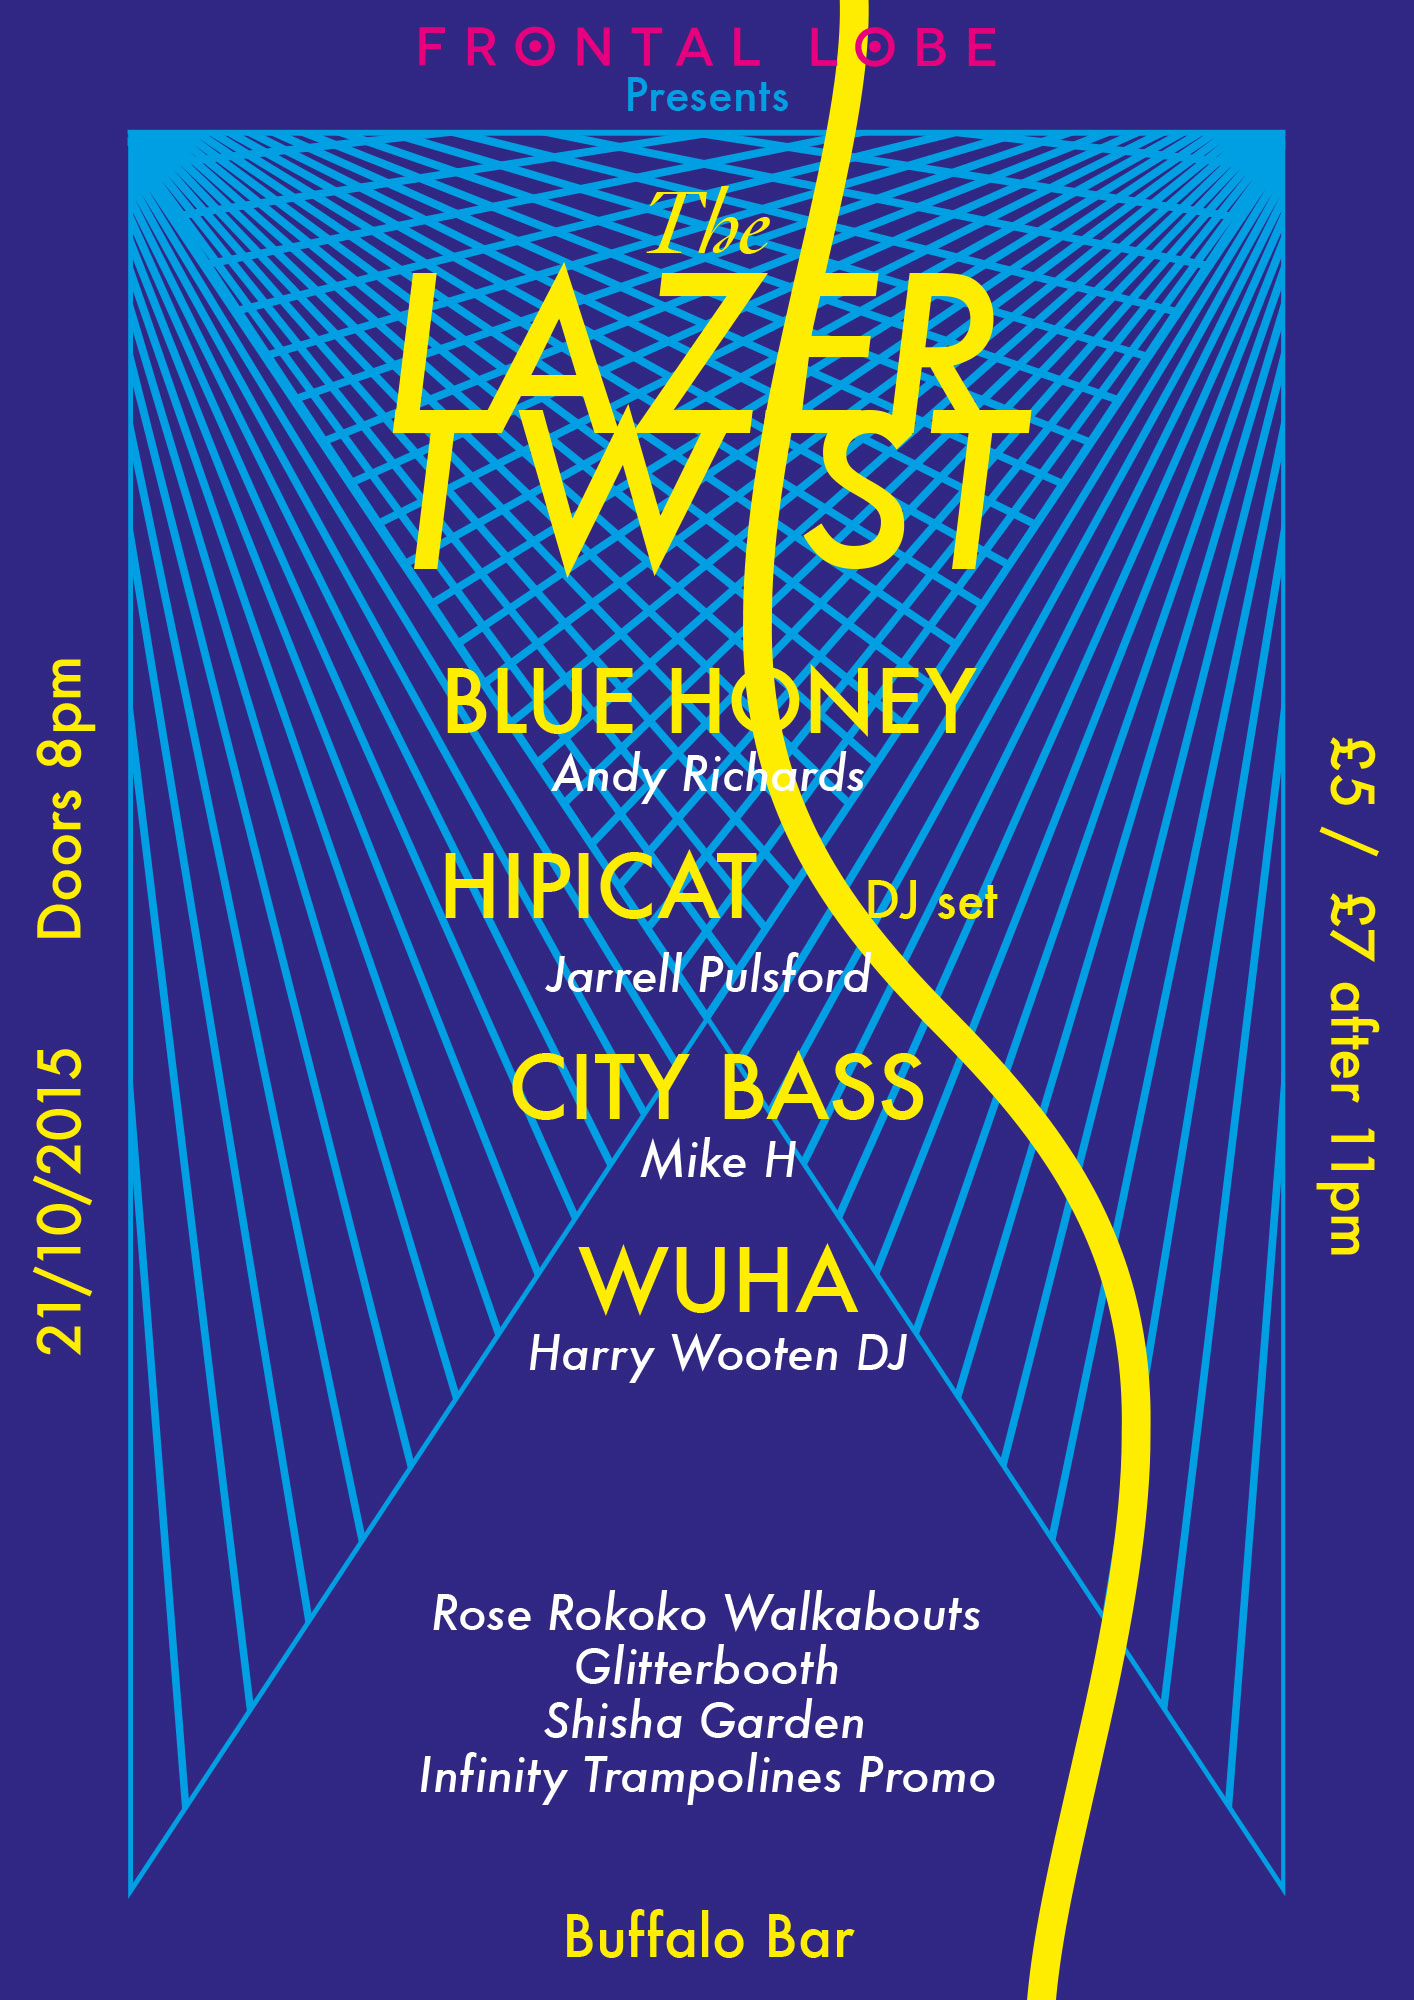 frontal-lobe-lazer-twist-oct-2015_web_new